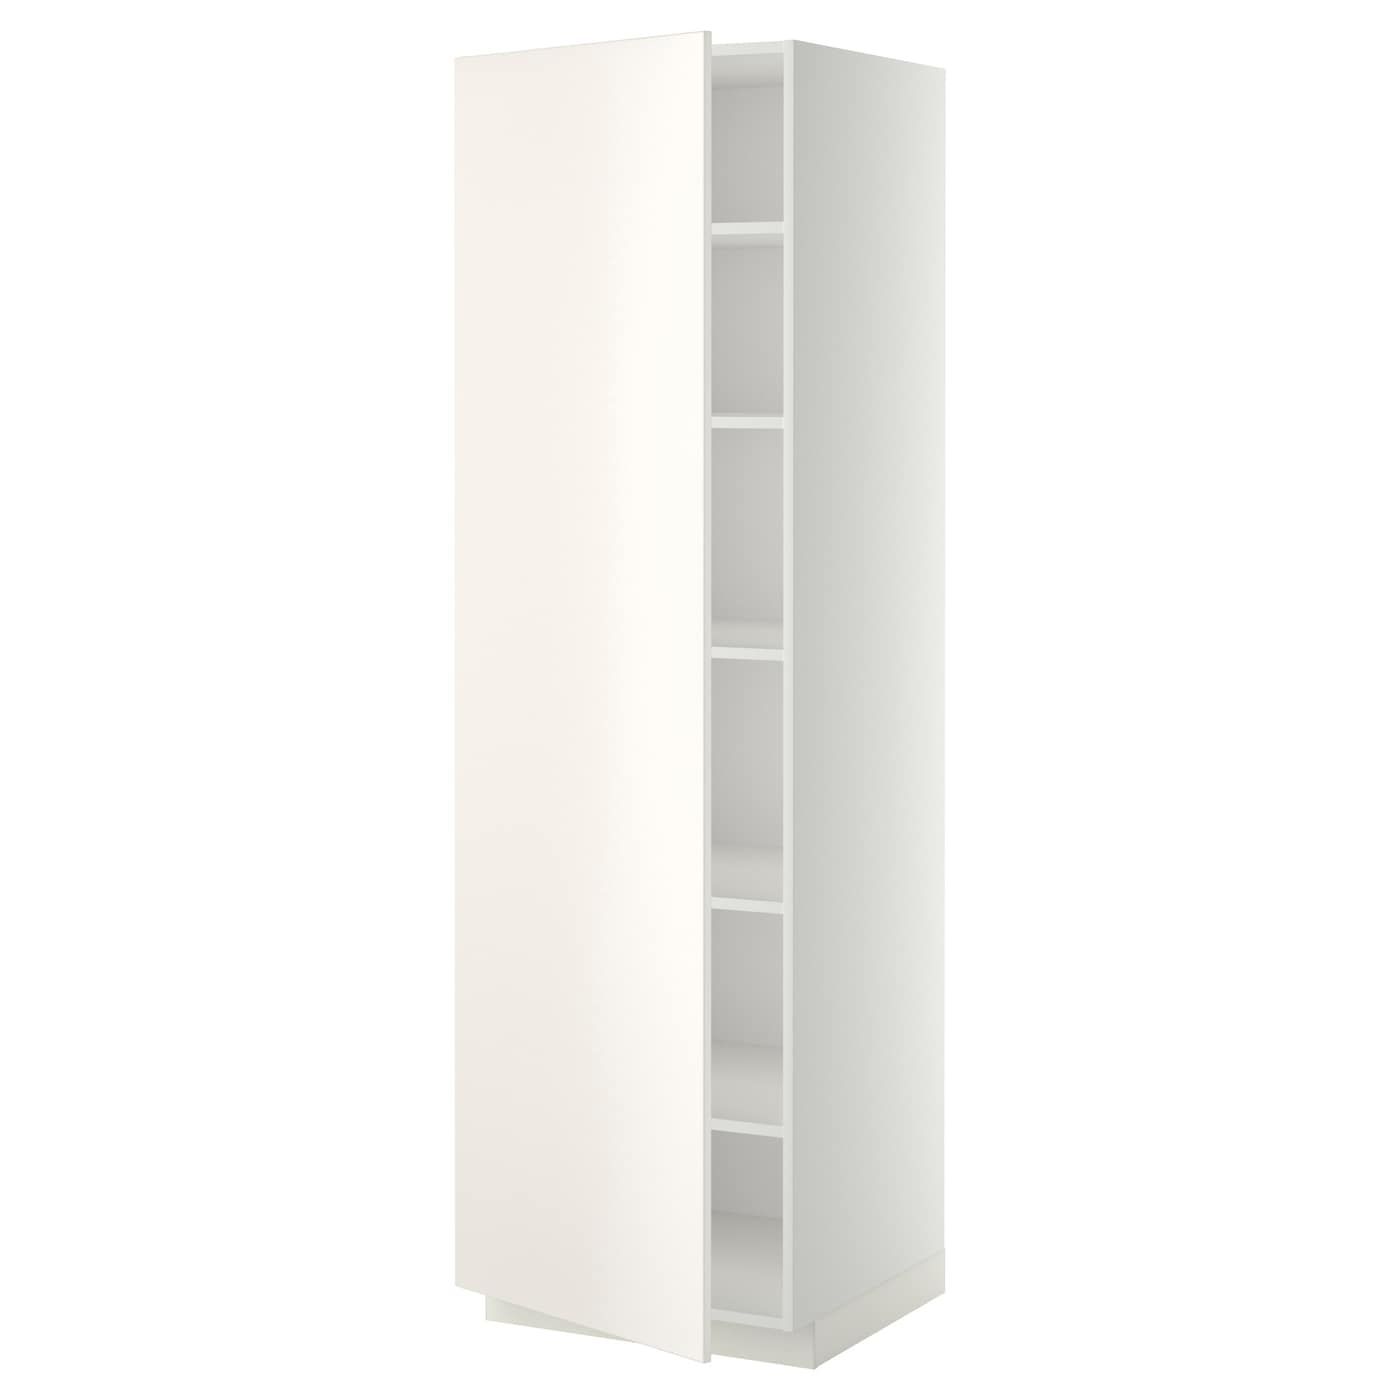 metod high cabinet with shelves white veddinge white 60x60x200 cm ikea. Black Bedroom Furniture Sets. Home Design Ideas